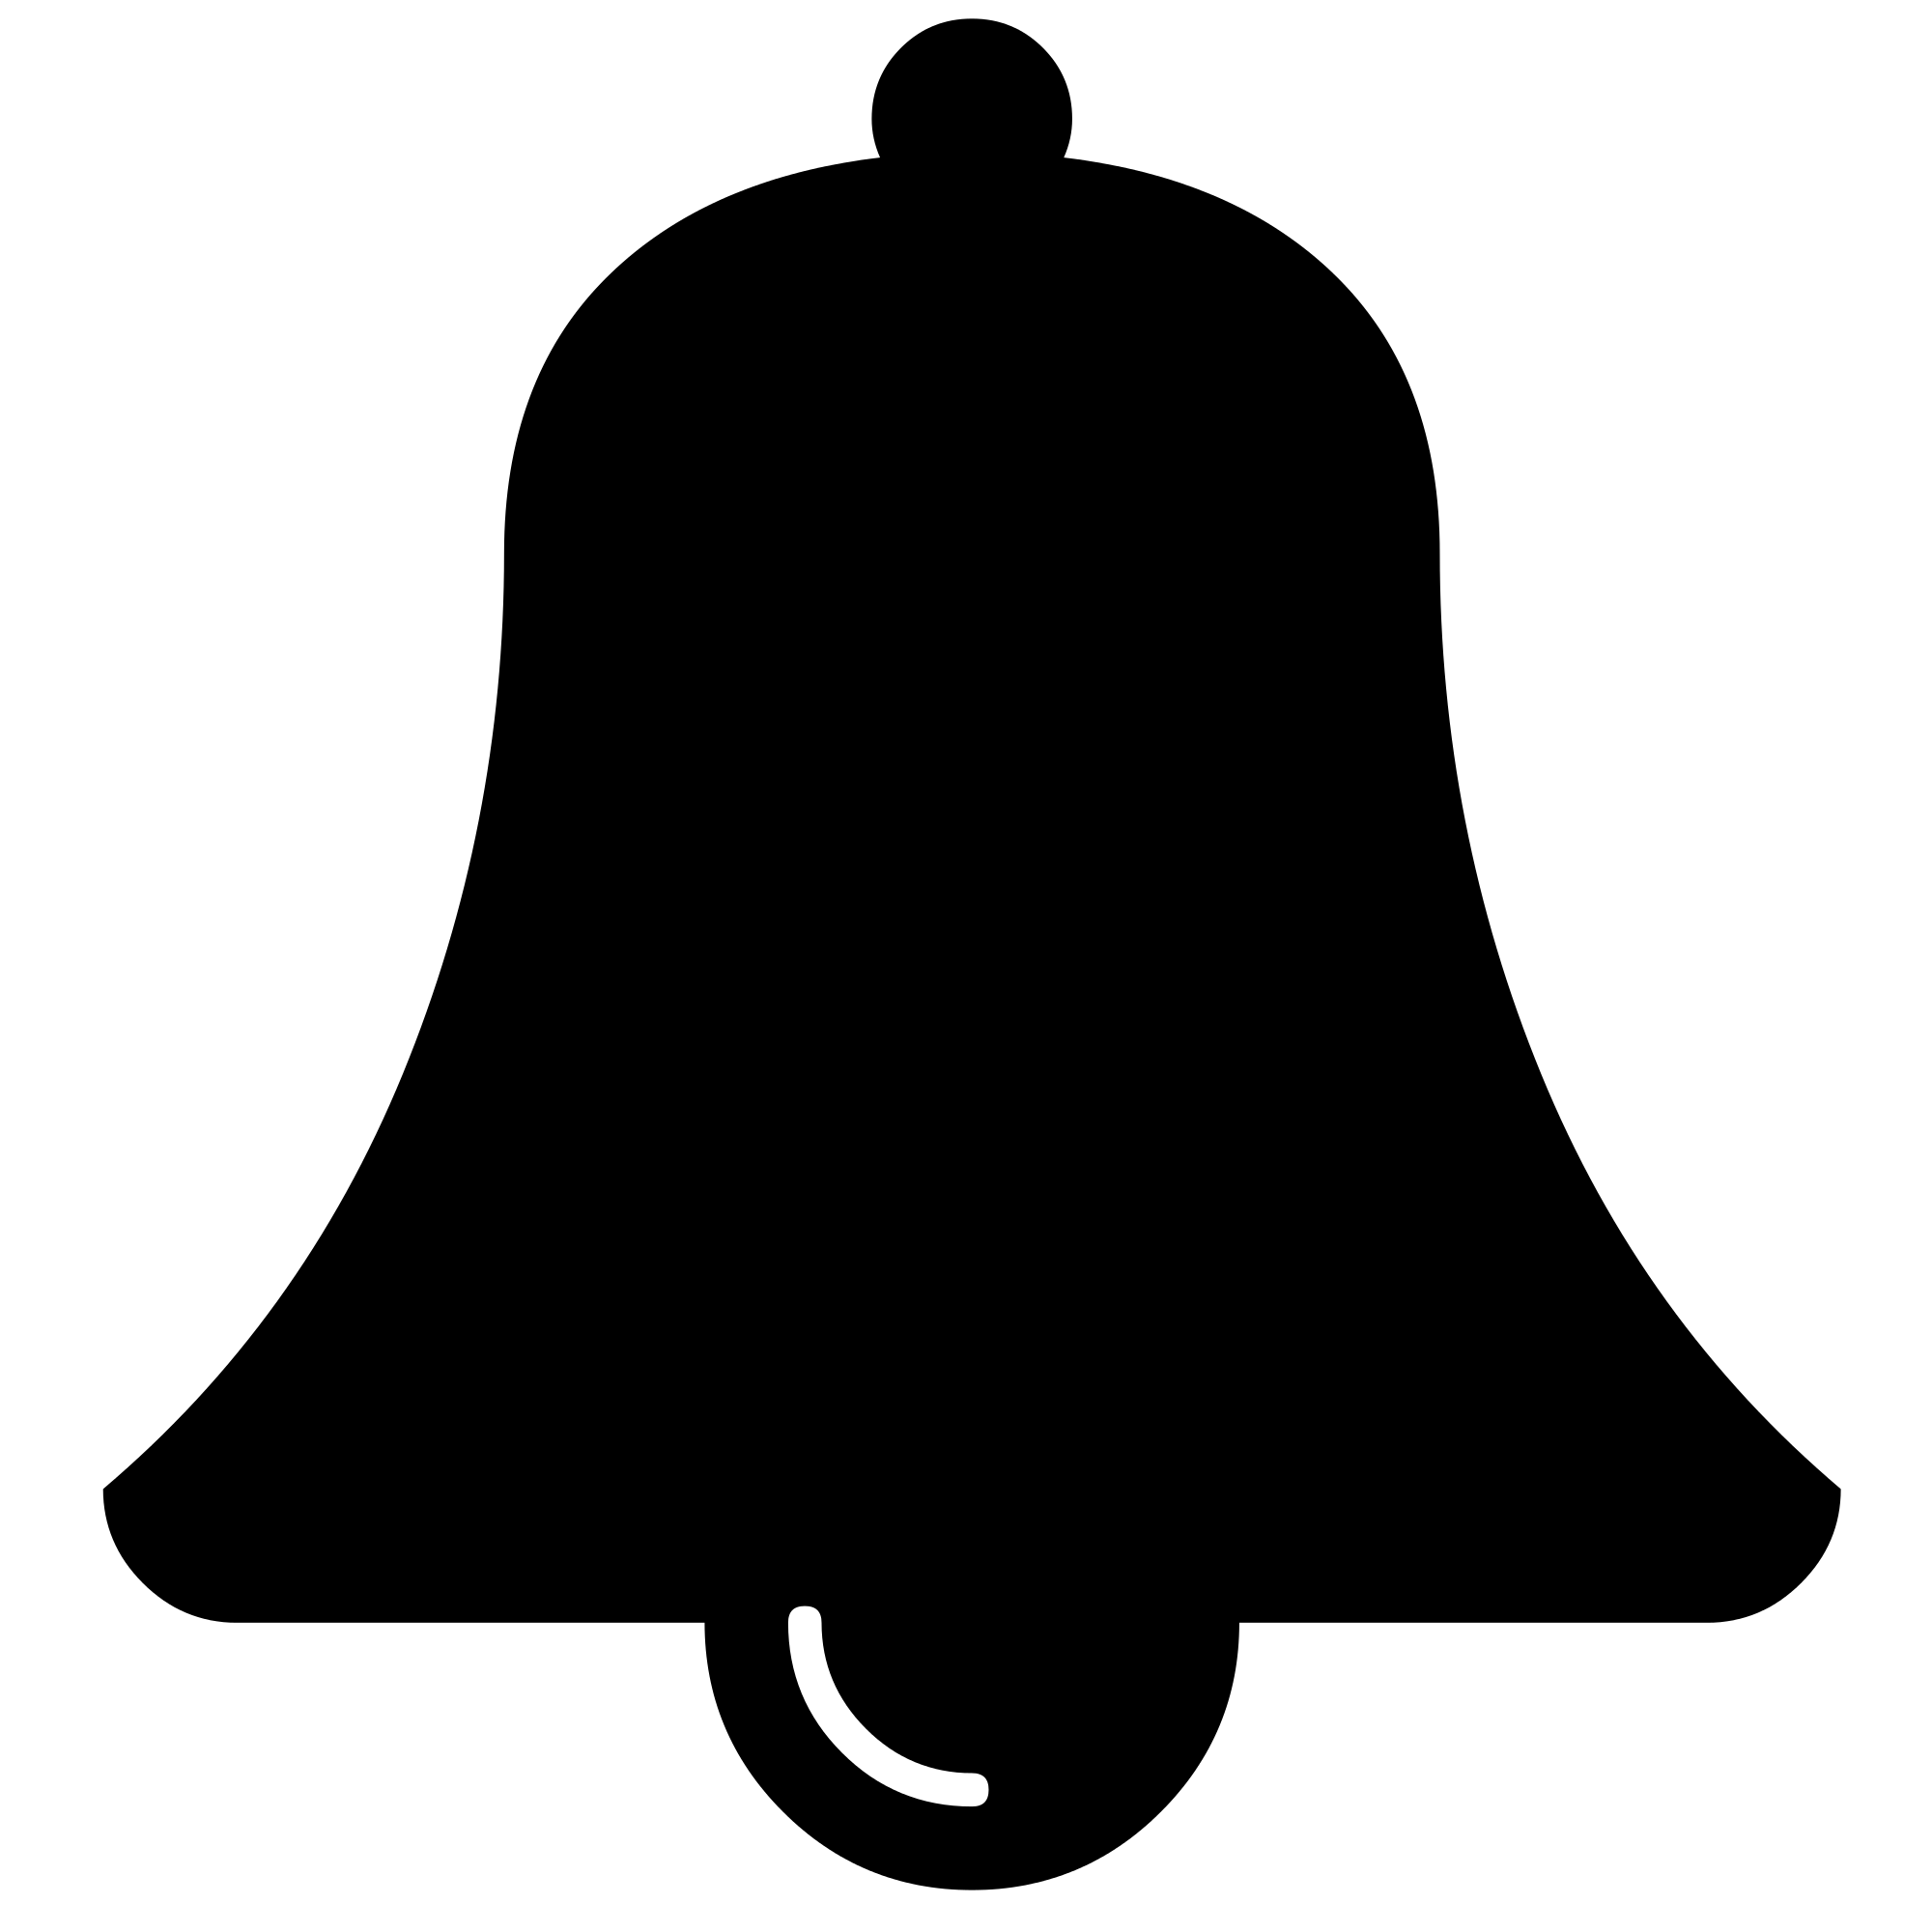 Bell PNG - 23308